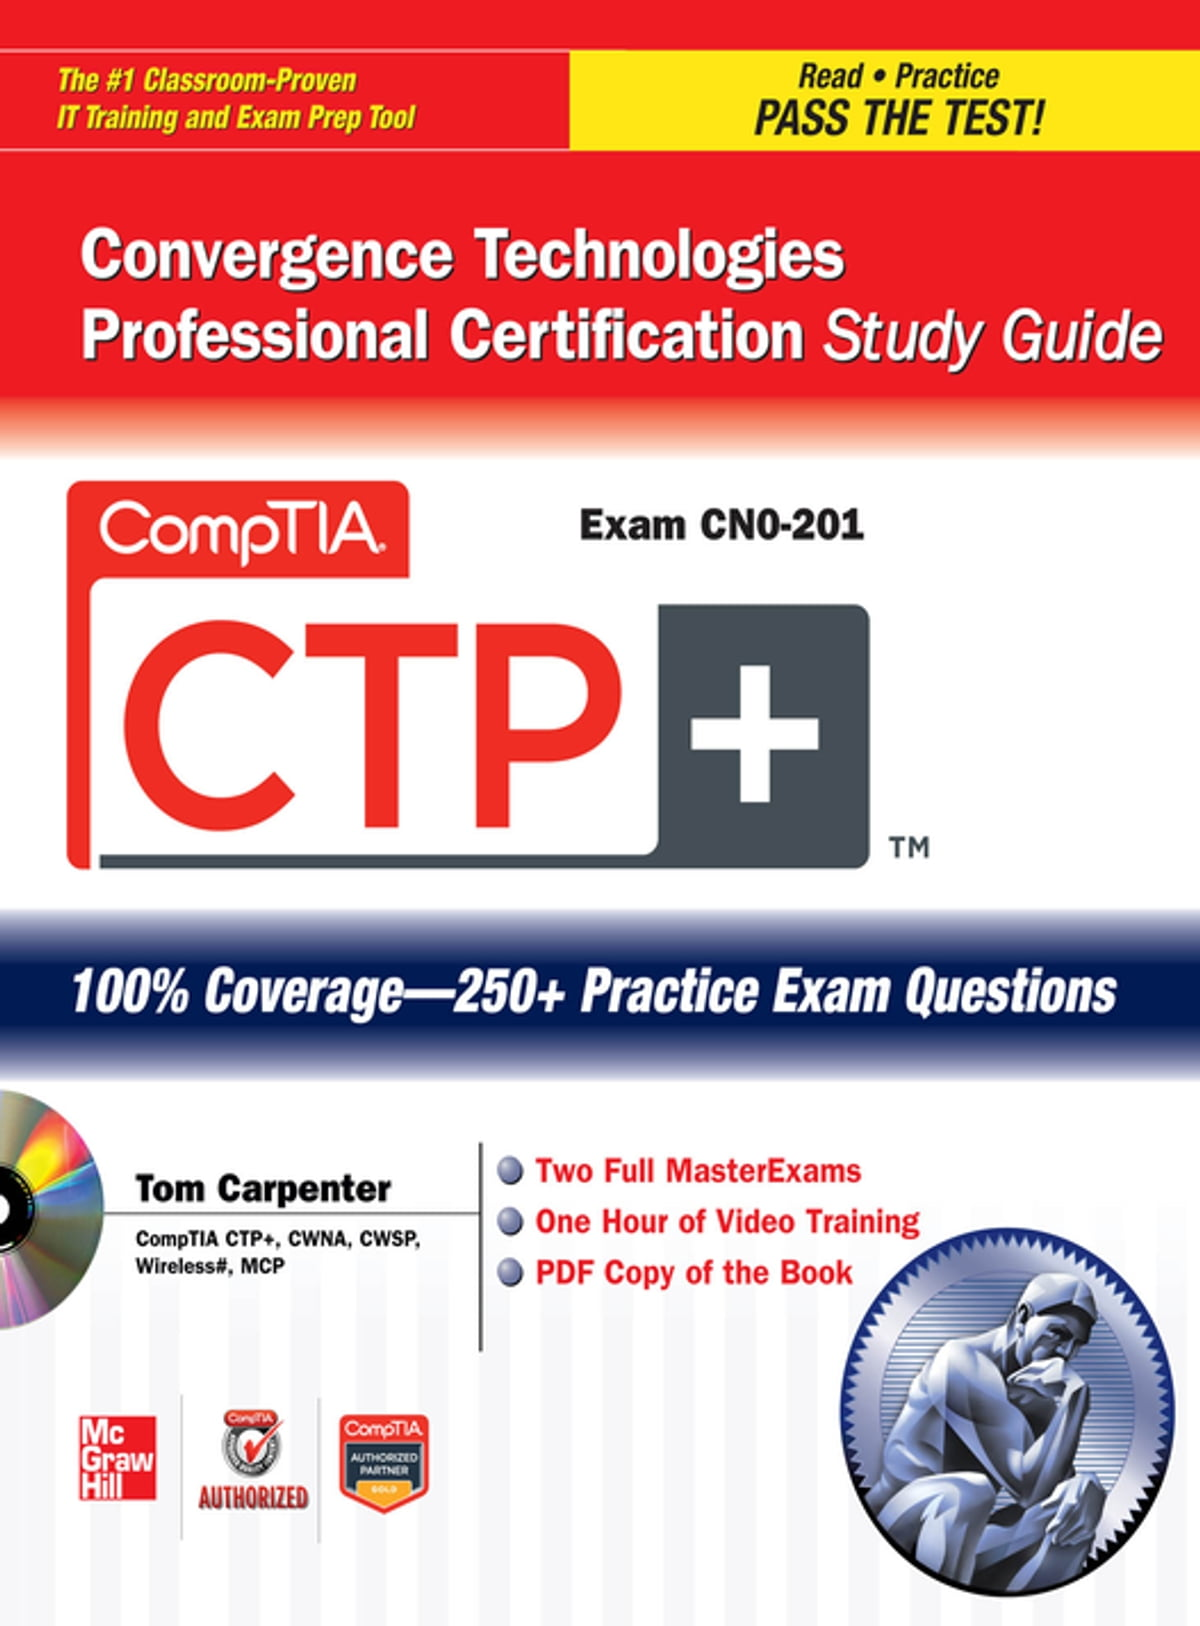 Comptia ctp convergence technologies professional certification comptia ctp convergence technologies professional certification study guide exam cn0 201 ebook by tom carpenter 9780071767569 rakuten kobo xflitez Images